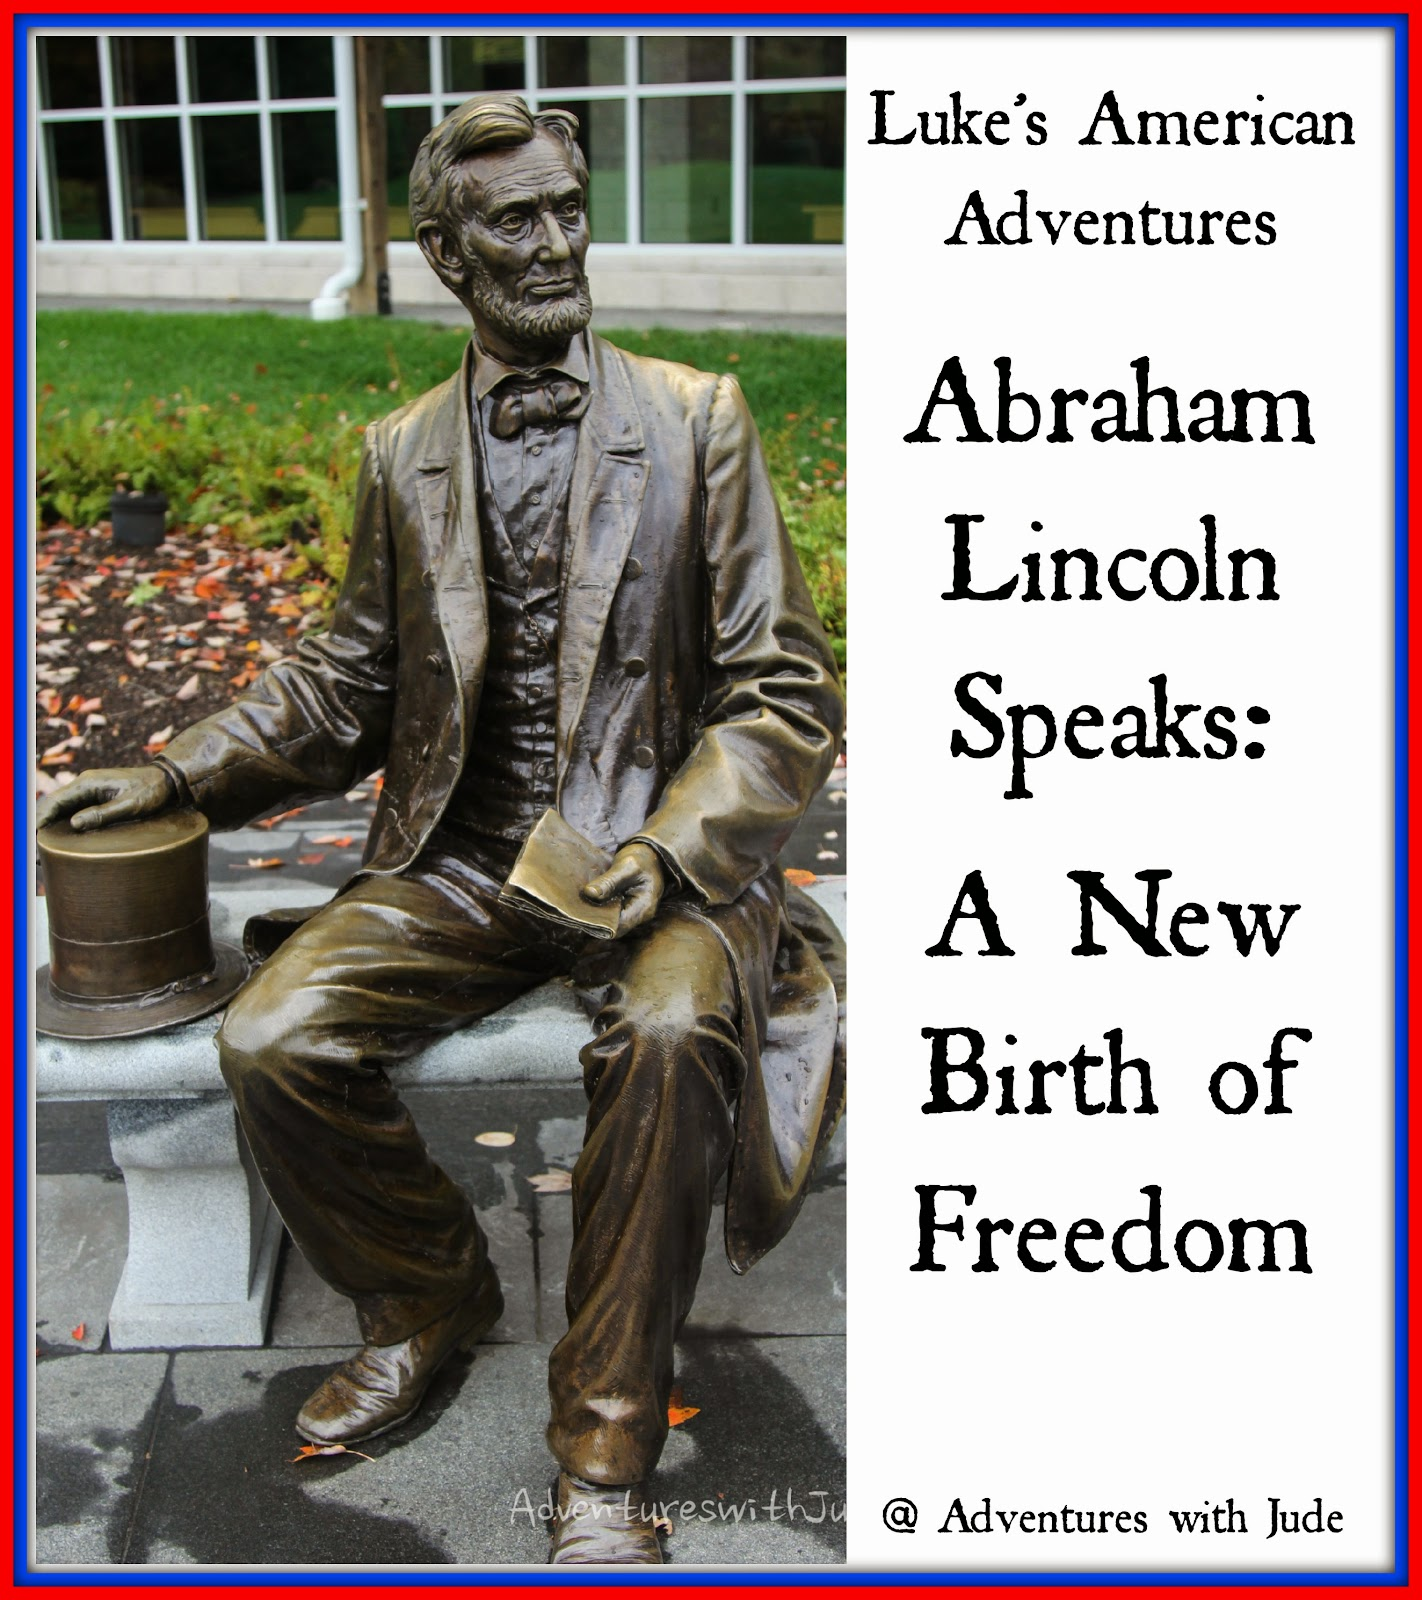 Abraham Lincoln Speaks: A New Birth of Freedom